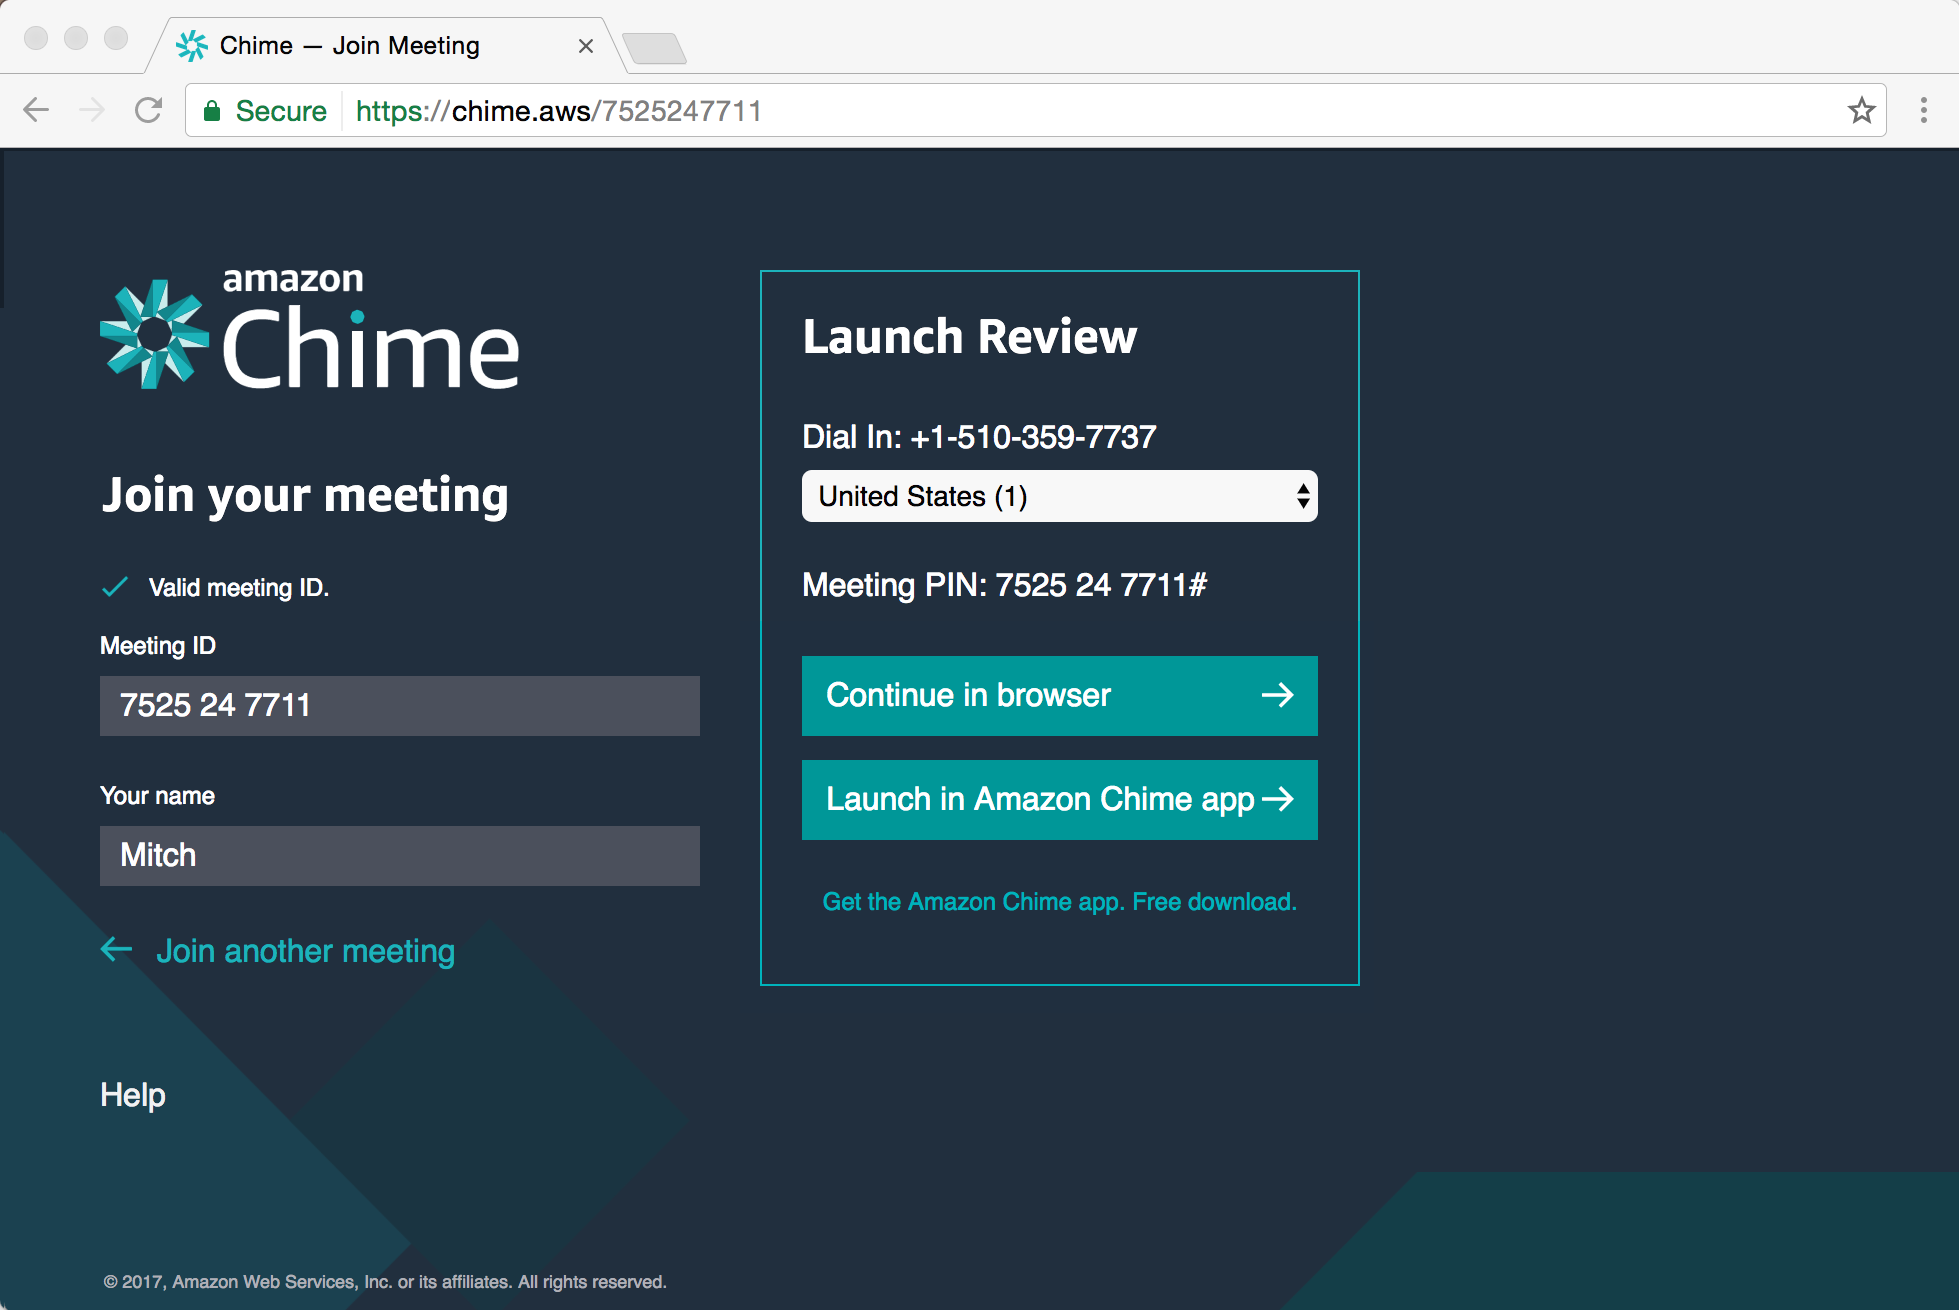 Users can join meetings through the Amazon Chime apps for iOS, Android, Mac OSX and Windows, or dial-in and join the meeting room through their web browser